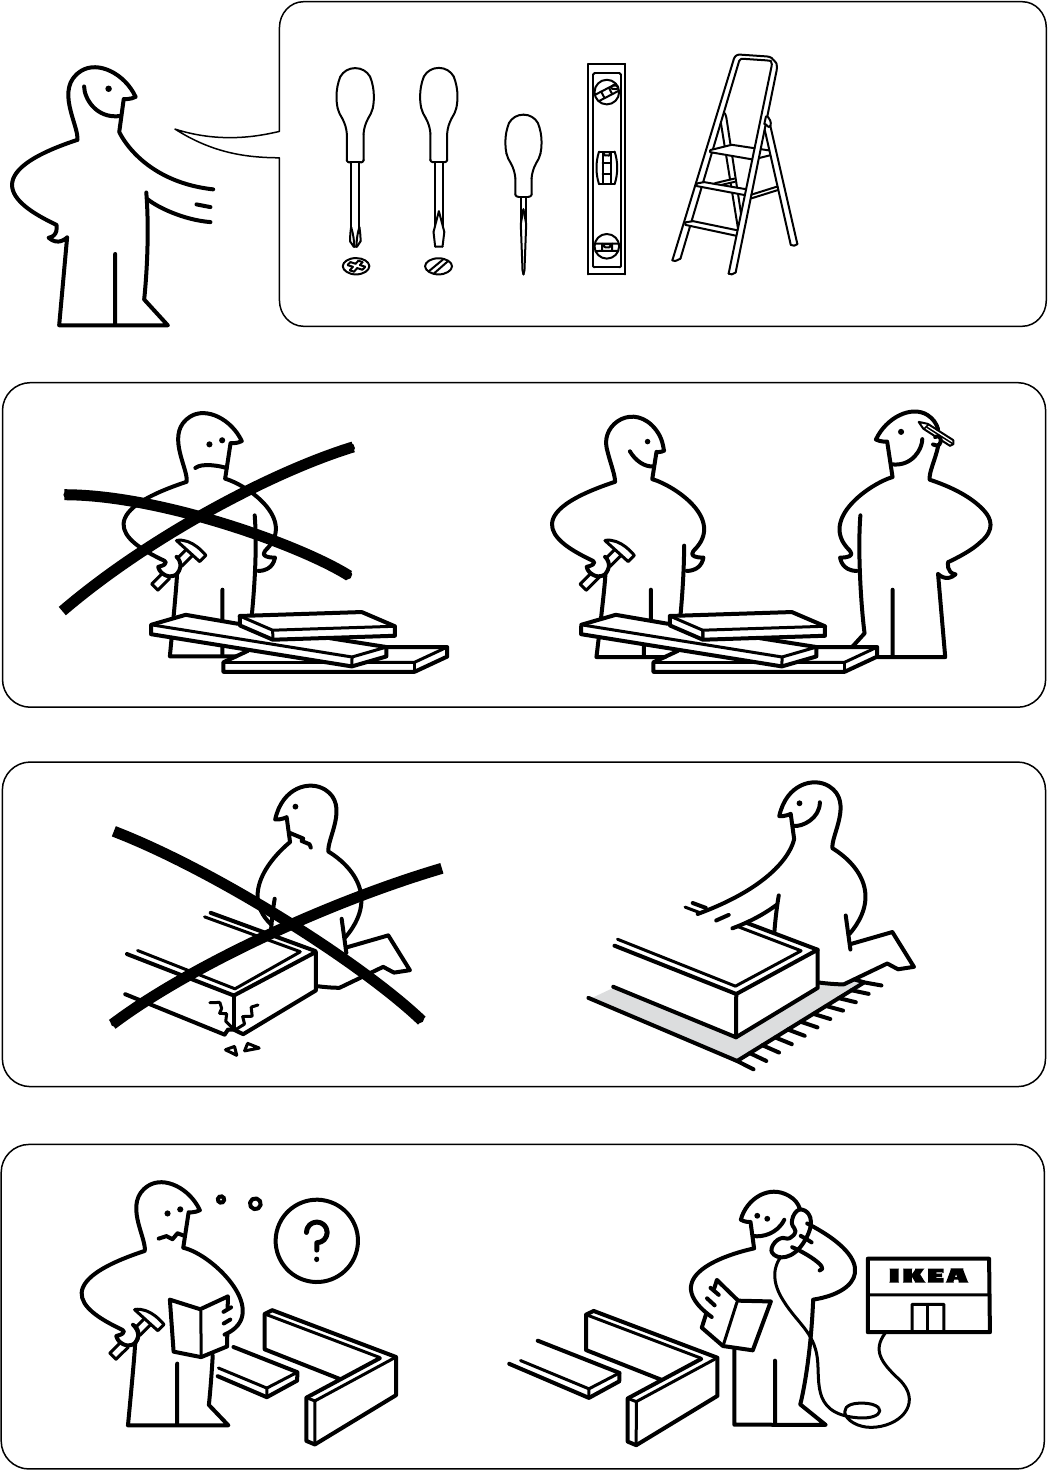 Cucina Ikea Pdf Ikea Expedit Instructions Pdf Expedit Instructions Furniture